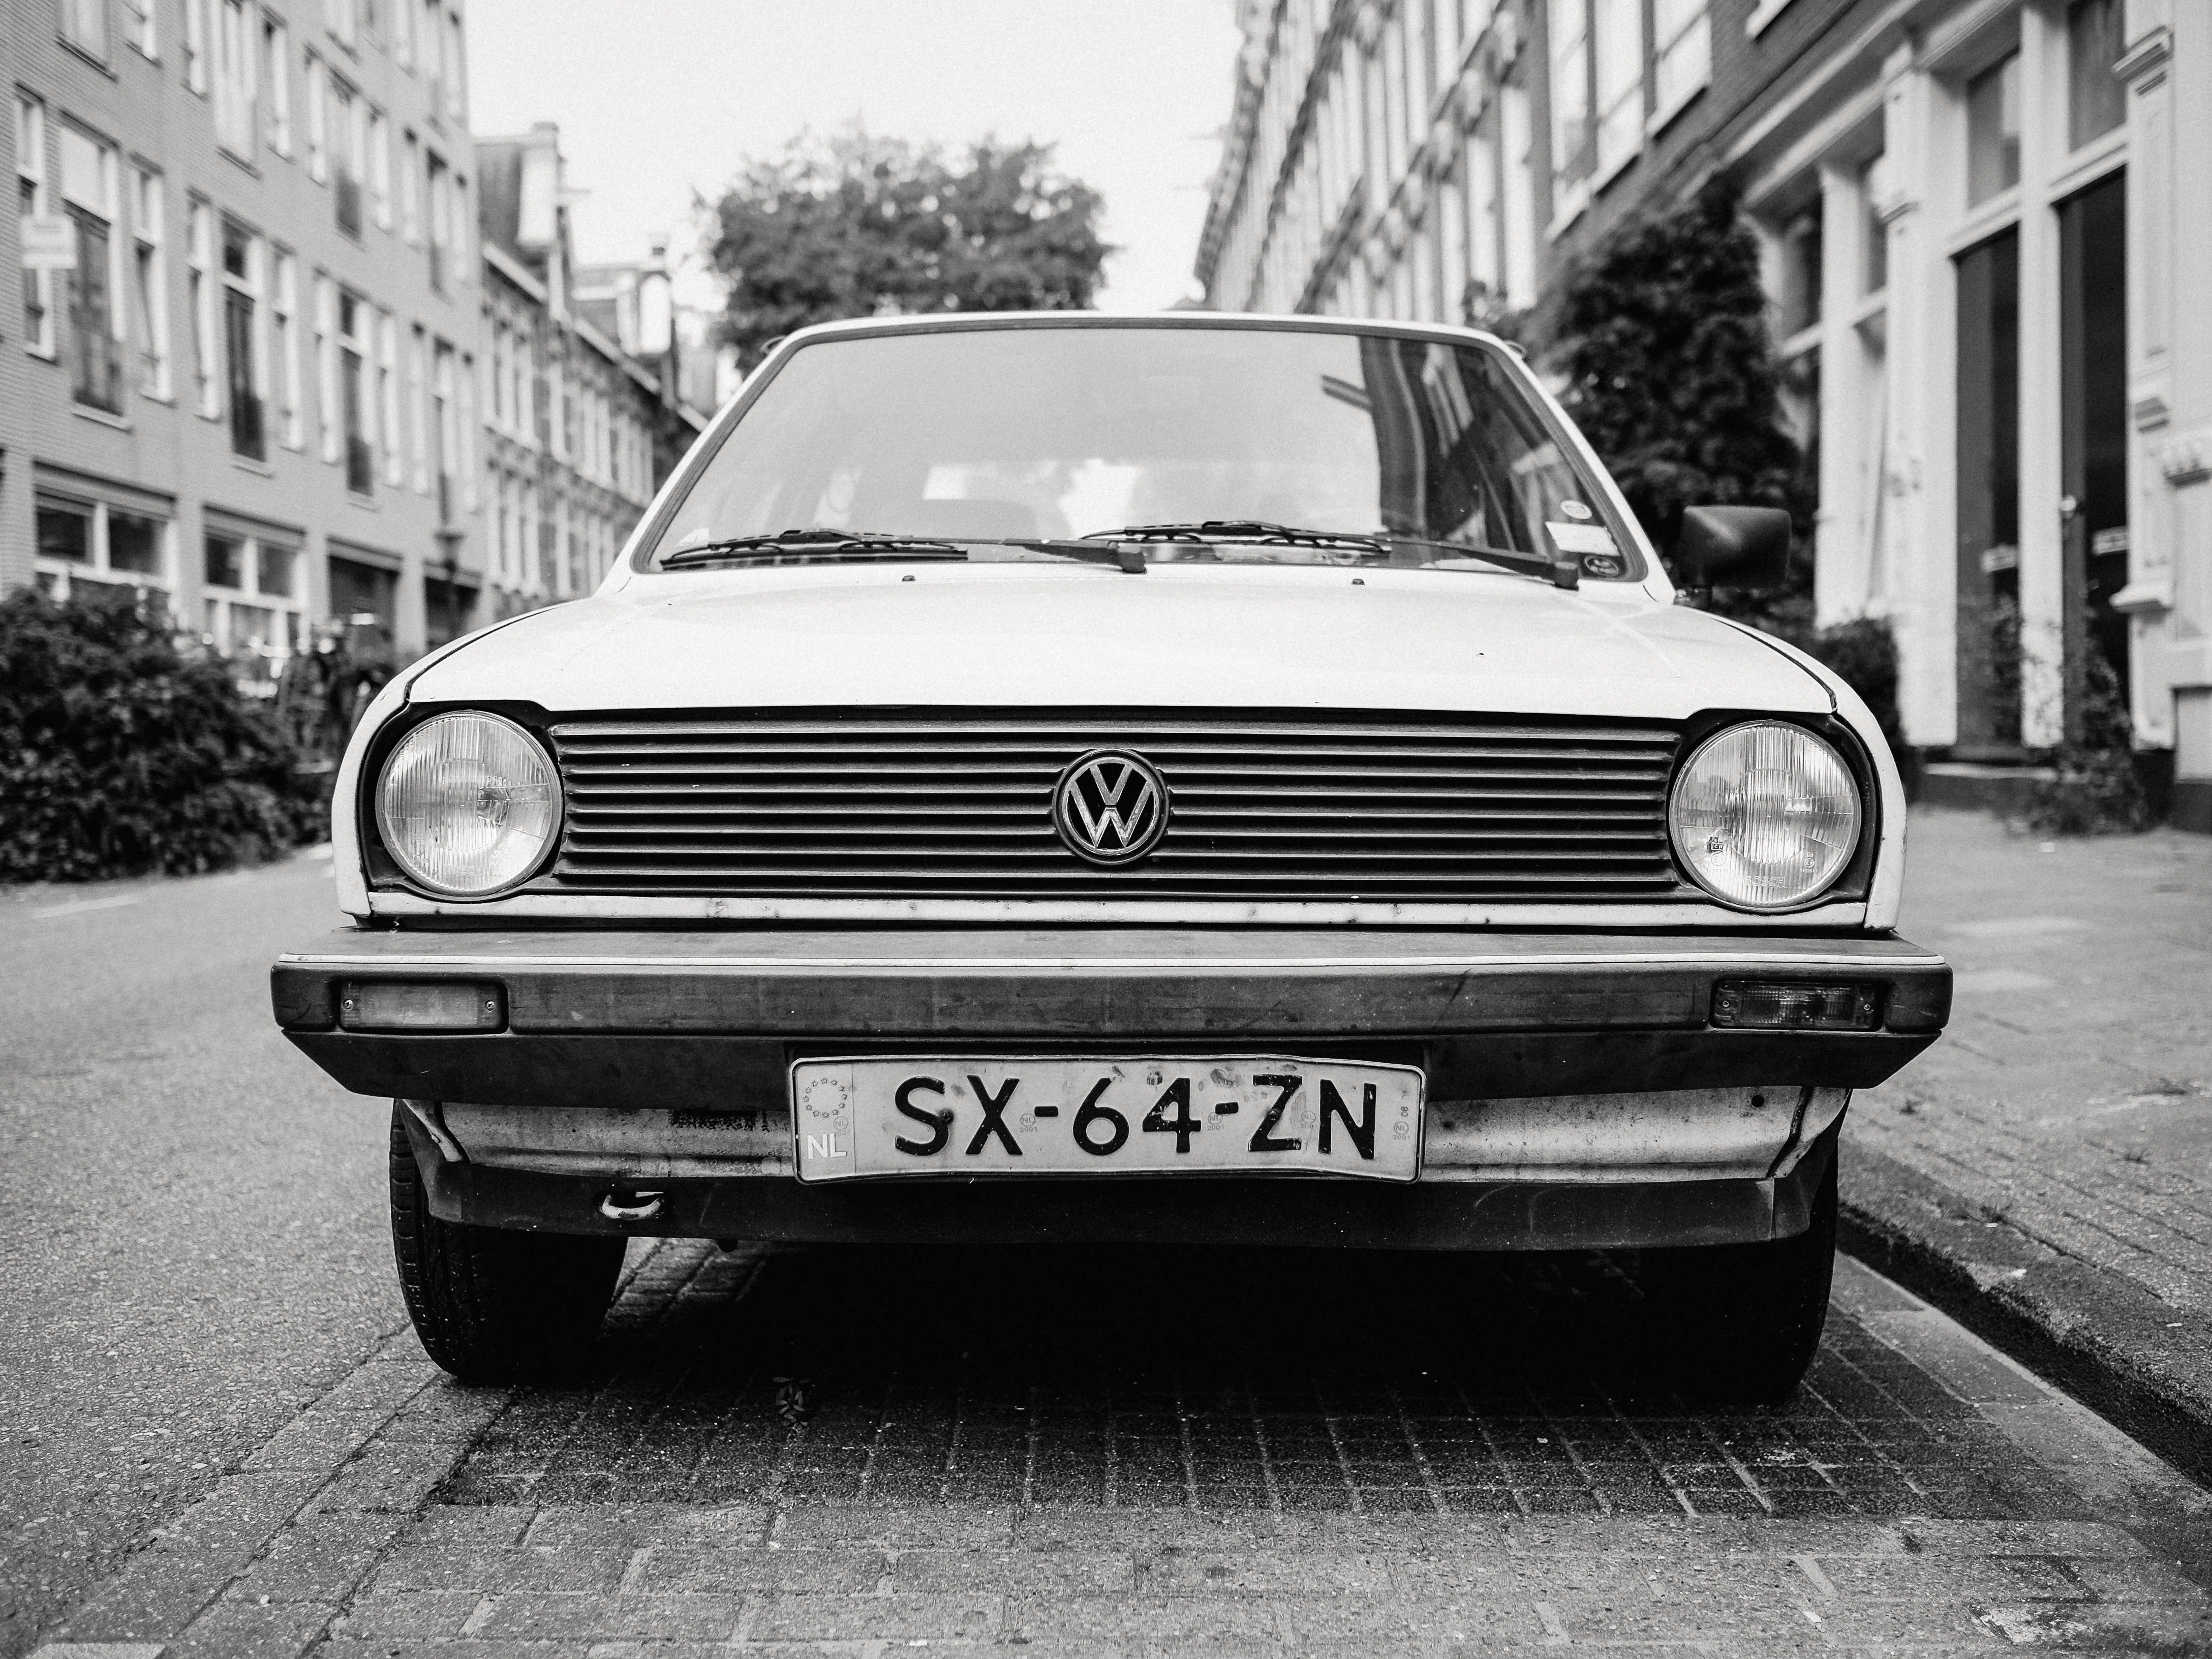 greyscale photo of white Volkswagen car